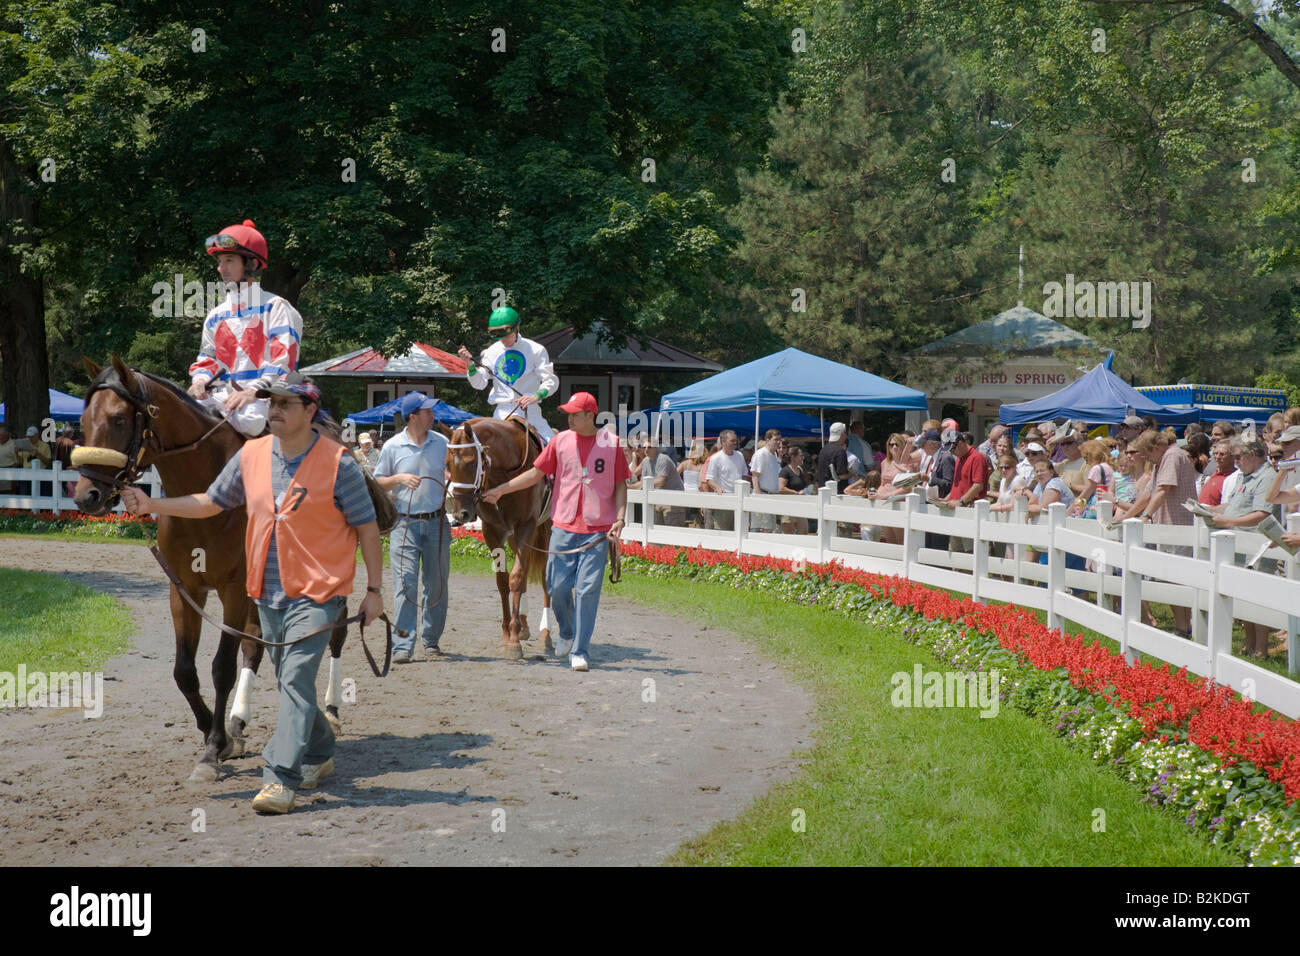 Horses and jockeys in paddock moments before racing at Saratoga Race Track Saratoga Springs New York State - Stock Image